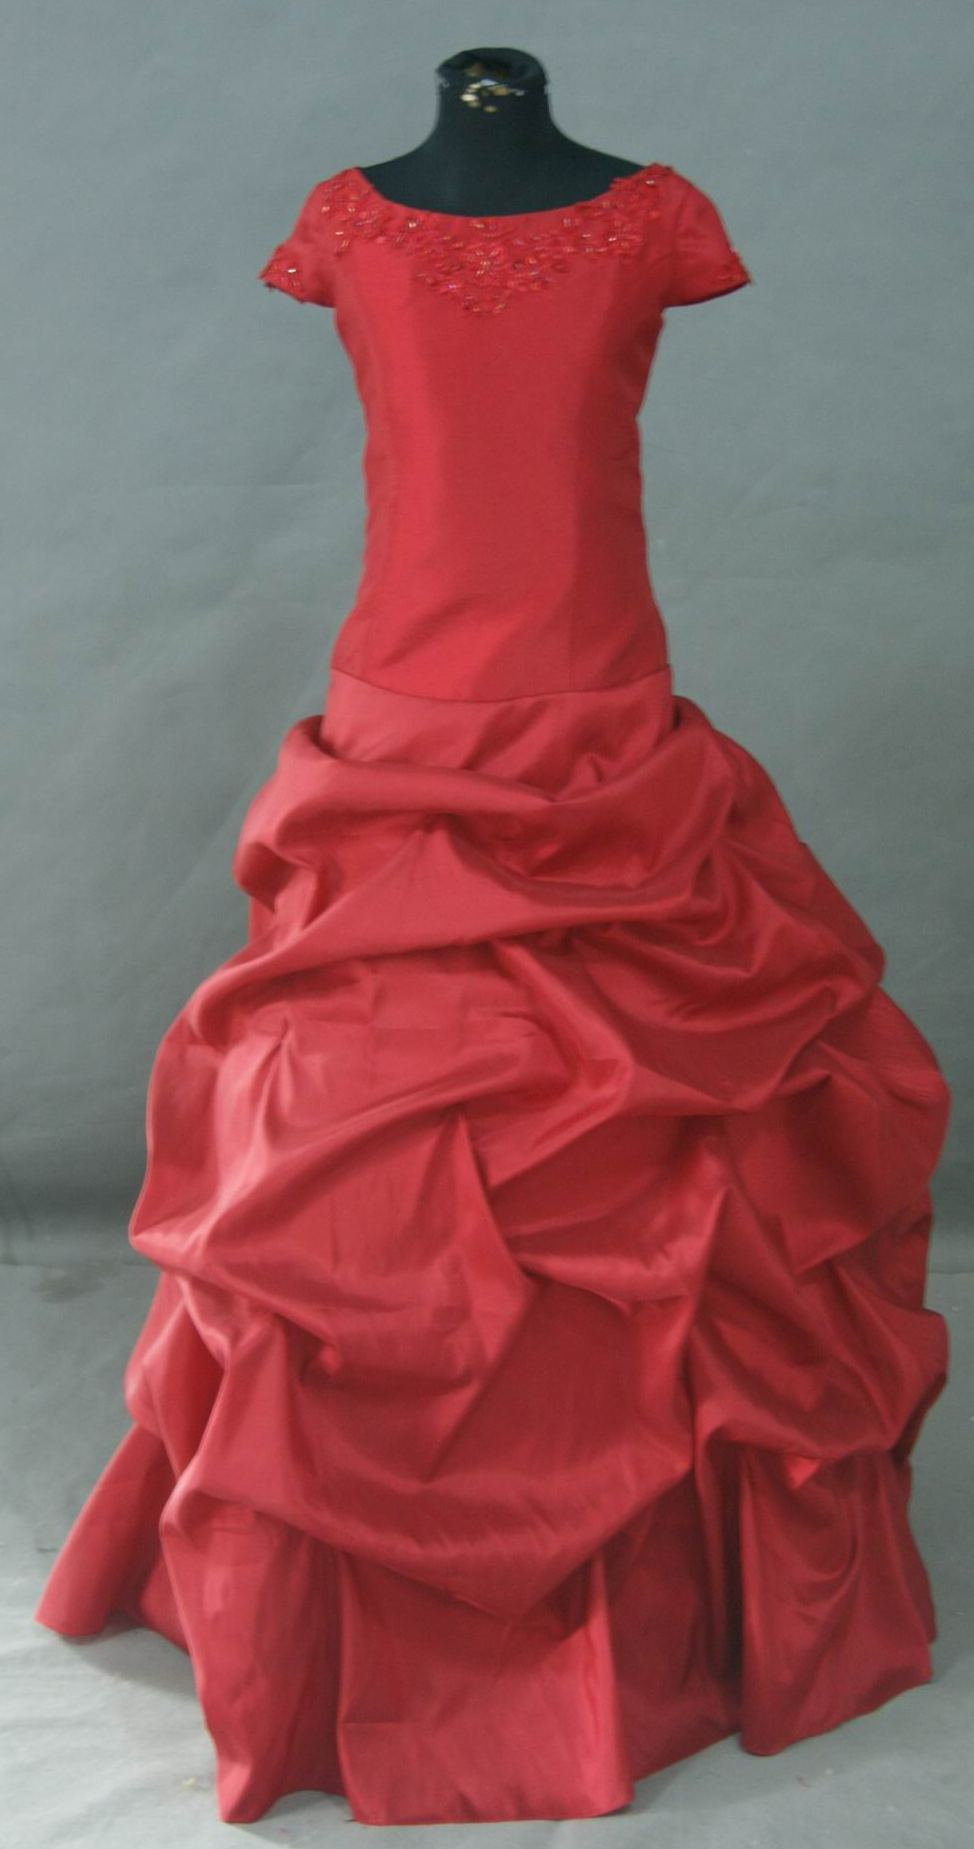 6f2c427a7 Childrens party dresses - ball gown gathered skirt.